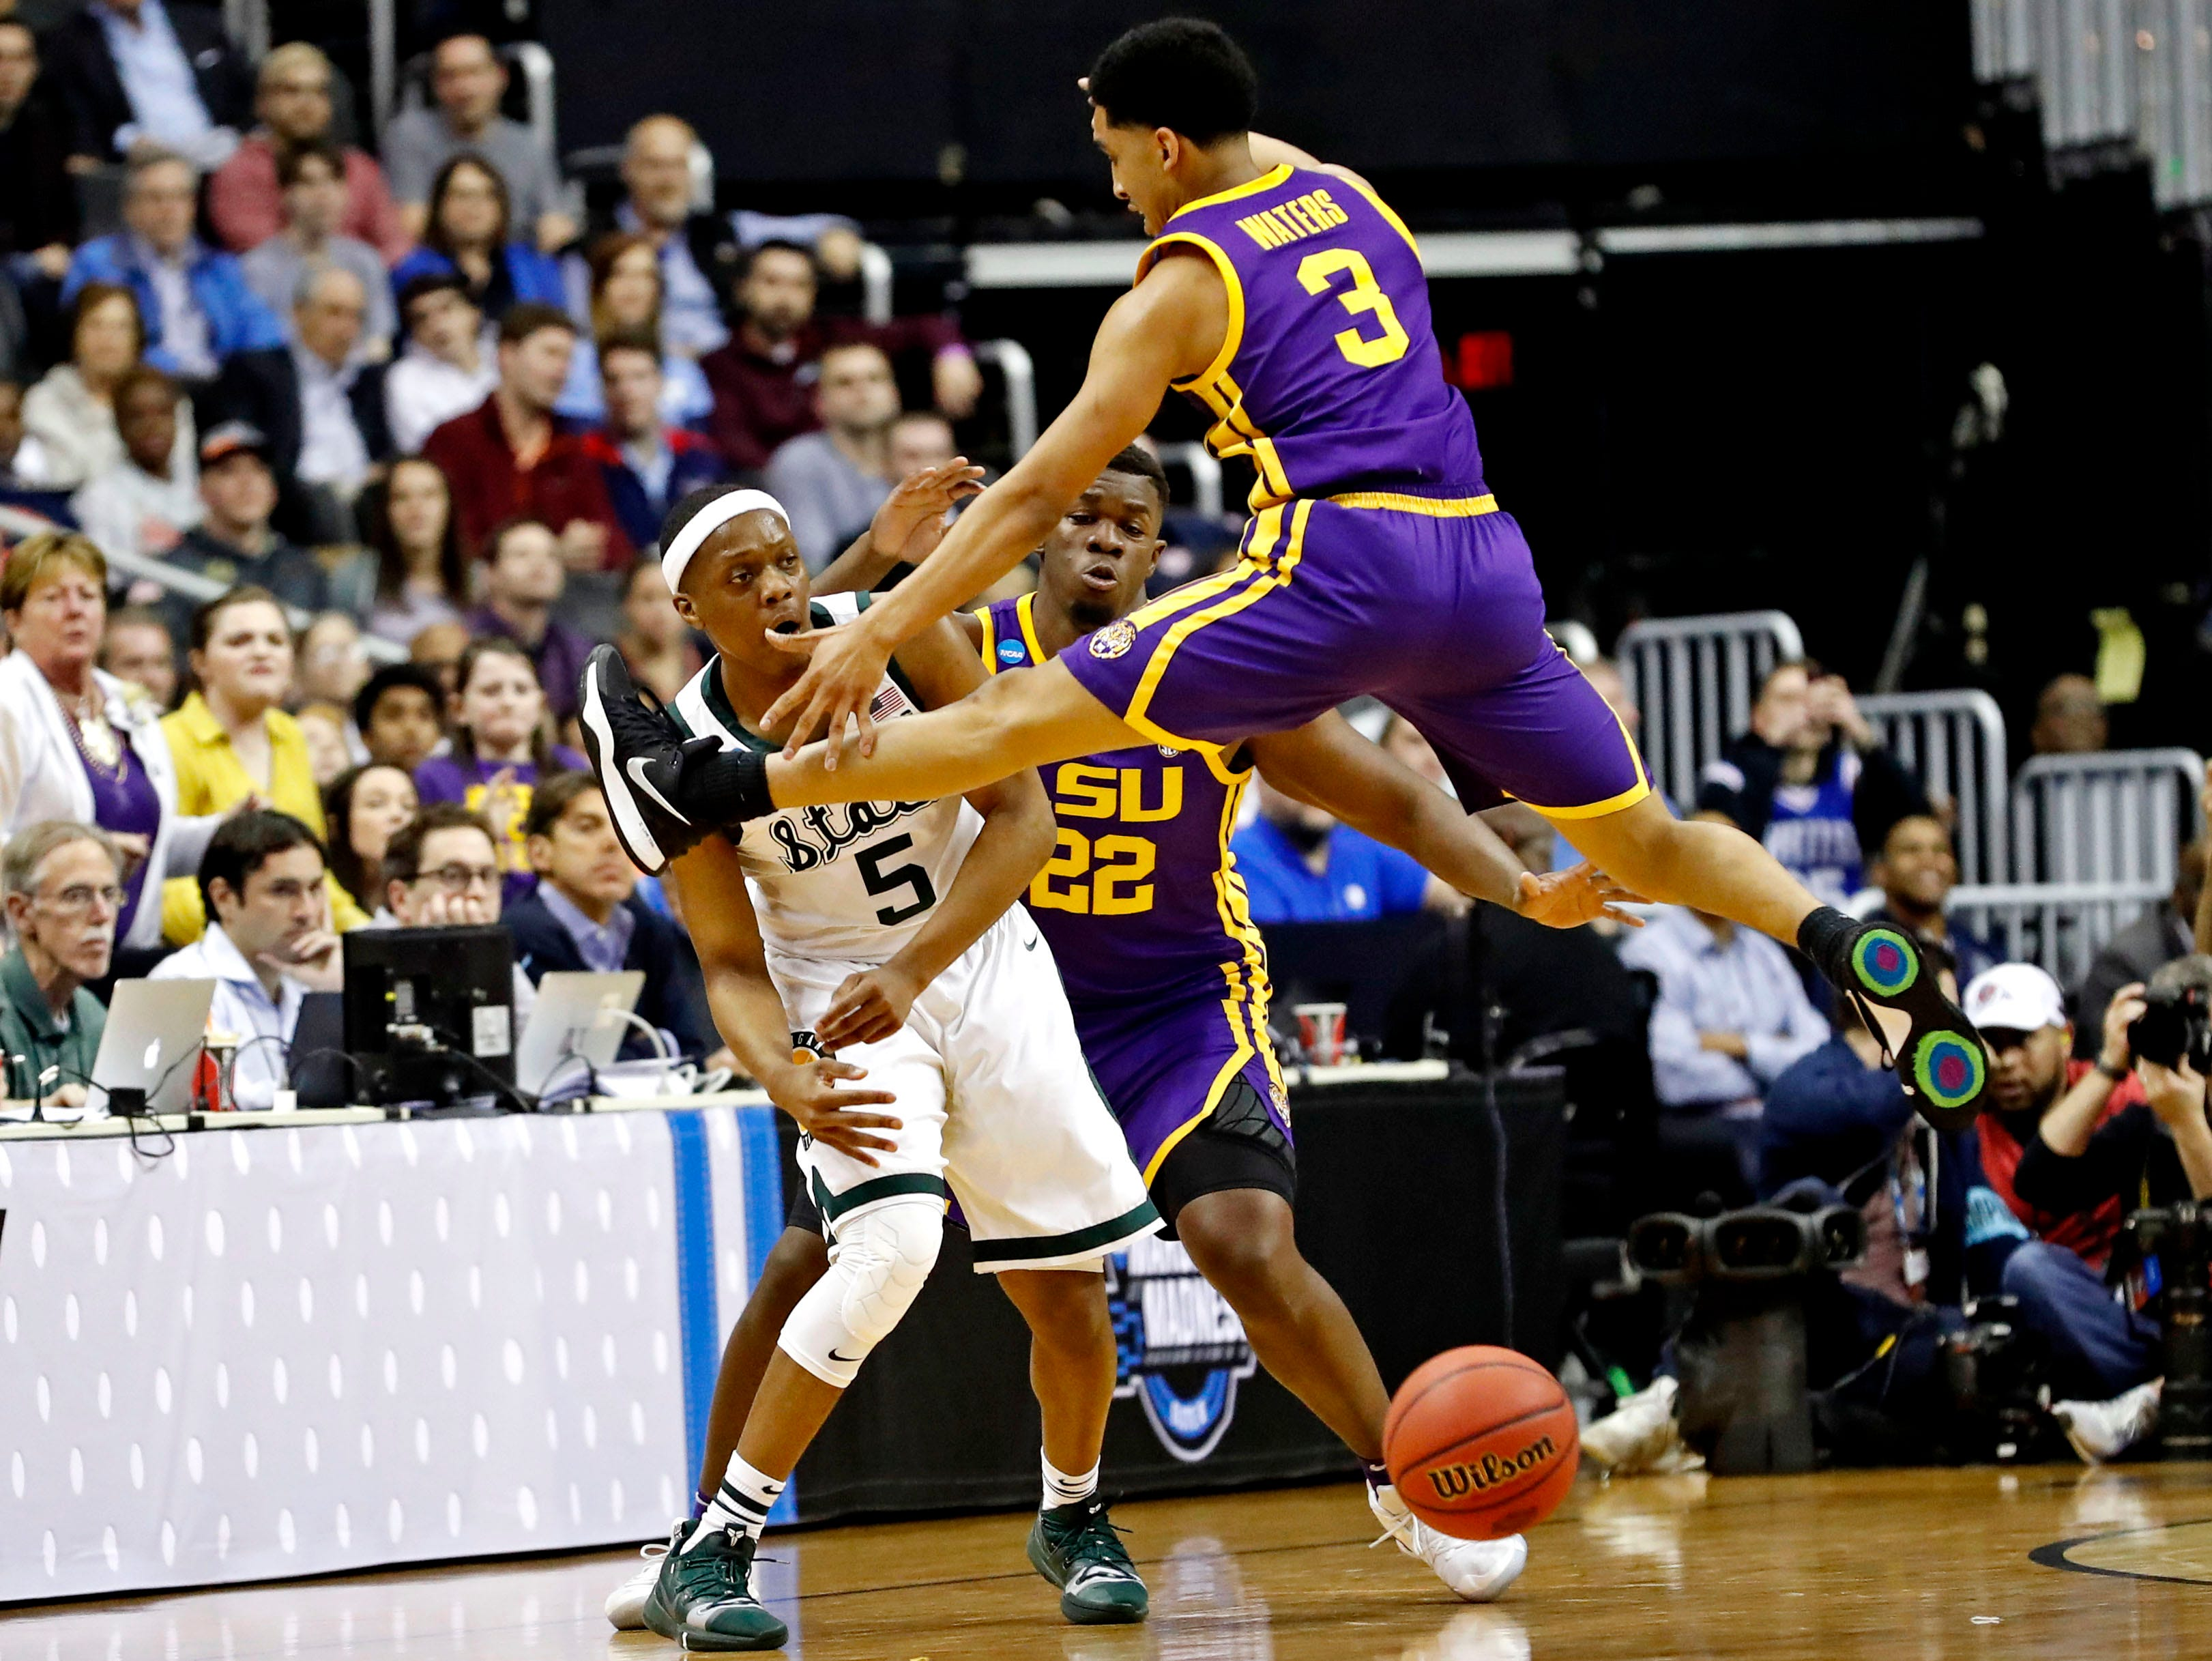 Mar 29, 2019; Washington, DC, USA; Michigan State Spartans guard Cassius Winston (5) passes the ball against LSU Tigers guard Tremont Waters (3) during the first half in the semifinals of the east regional of the 2019 NCAA Tournament at Capital One Arena. Mandatory Credit: Geoff Burke-USA TODAY Sports